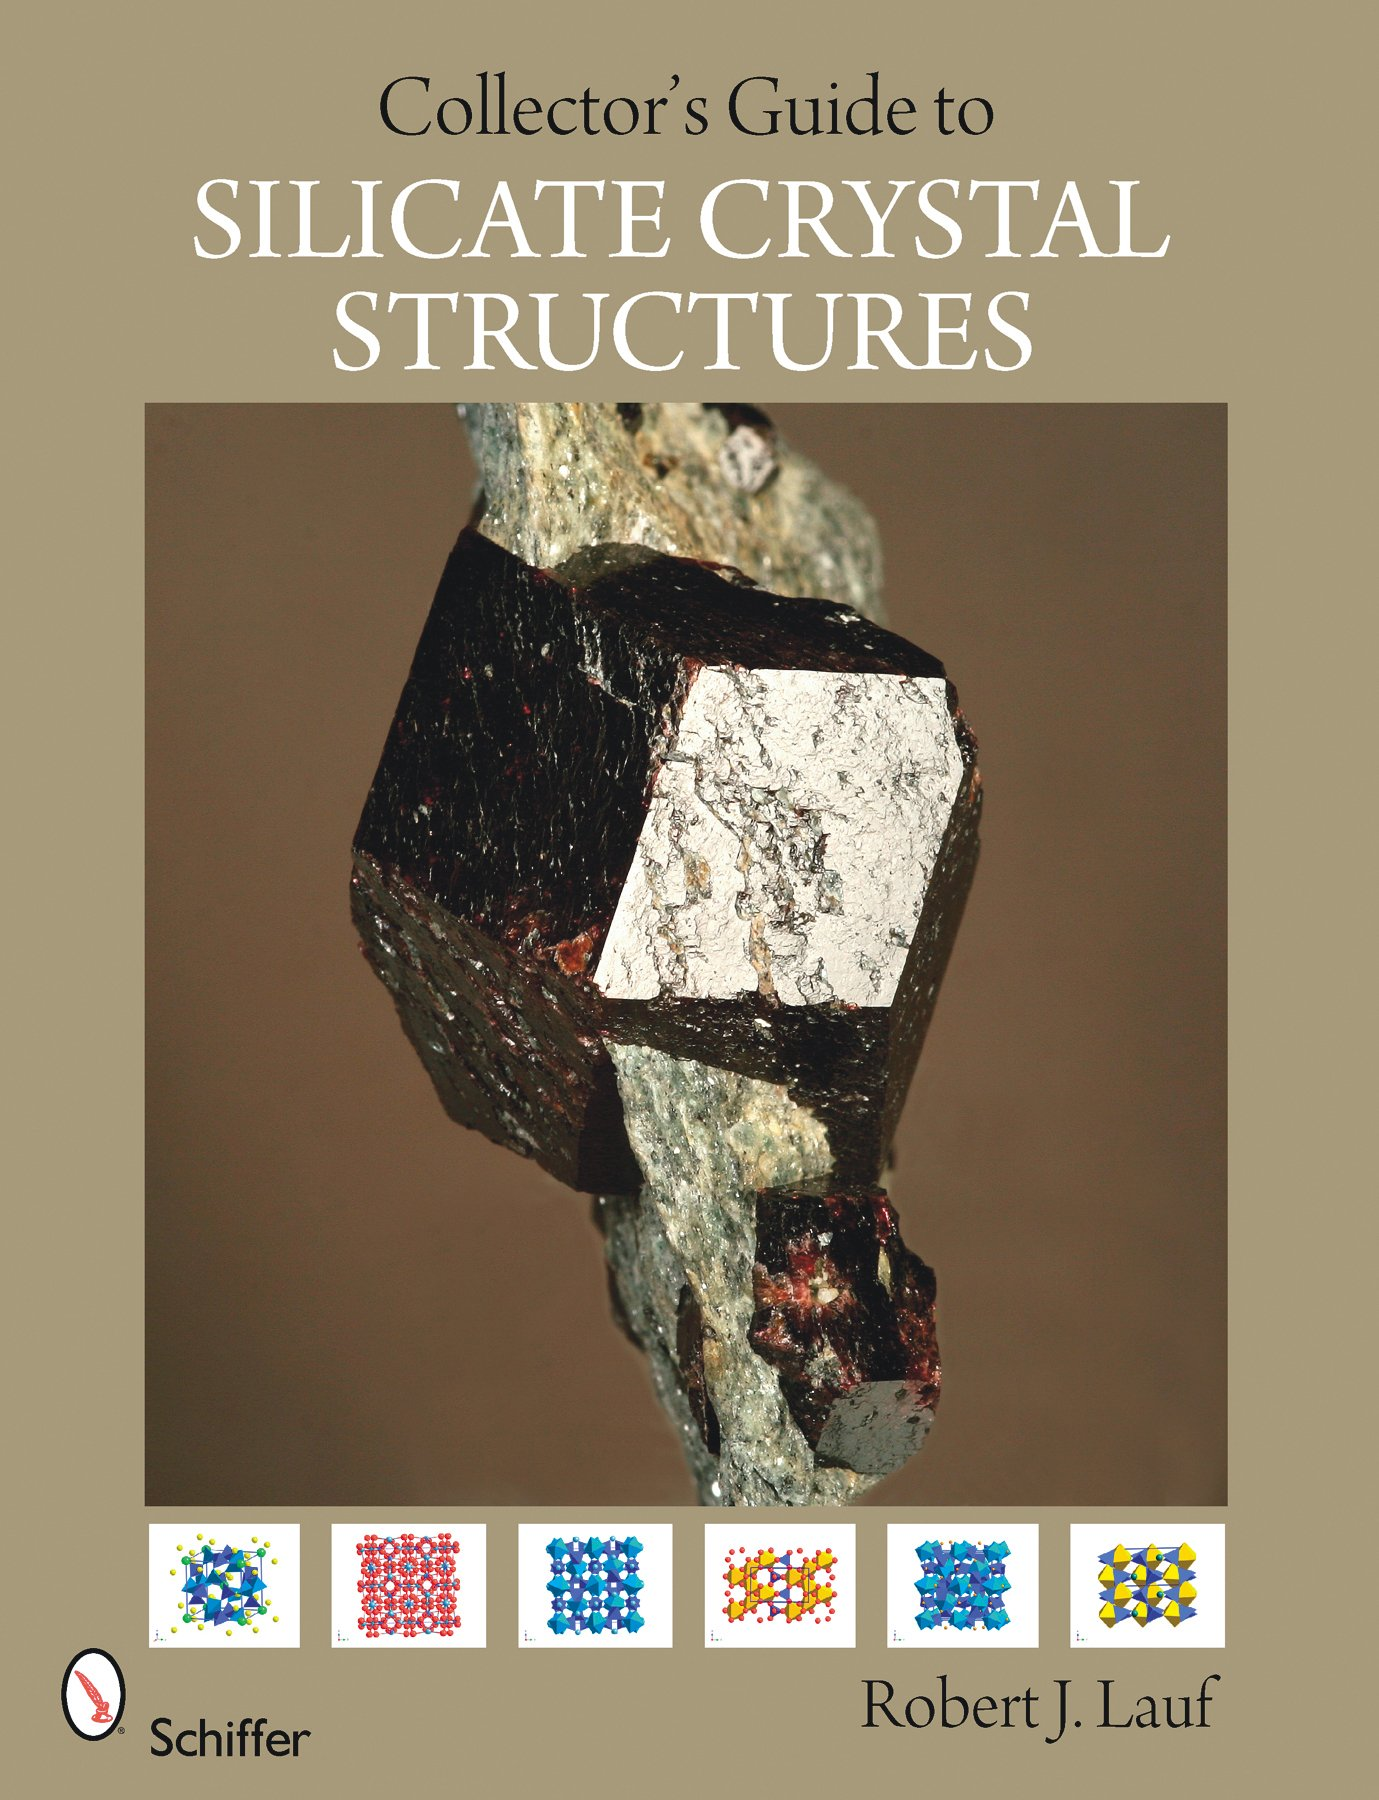 The Collector's Guide to Silicate Crystal Structures (Schiffer Earth Science  Monographys): Robert Lauf: 9780764335792: Amazon.com: Books